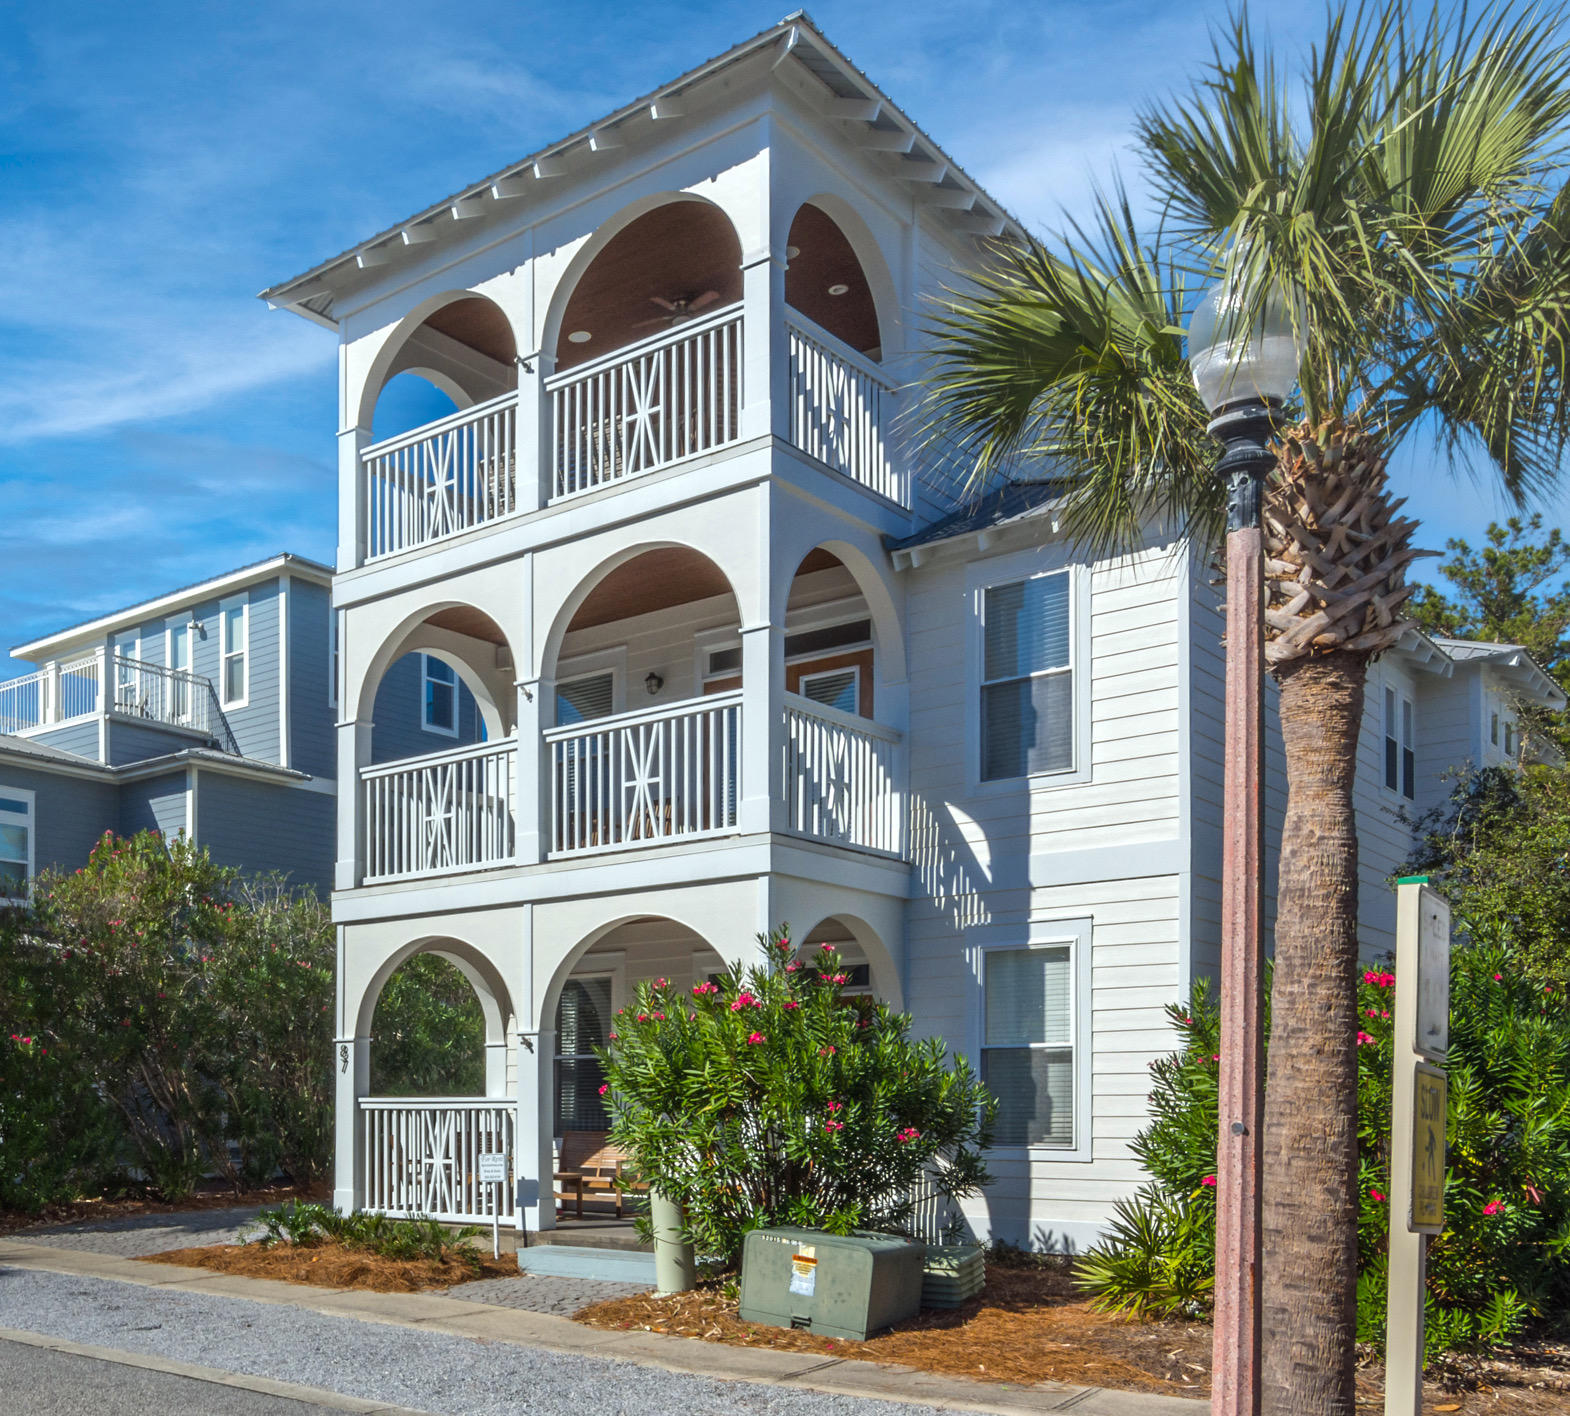 Newly remodeled luxury home with prime location in Seacrest Beach! Top Rental Performer with $109,730.50 in 2021 year to date revenue on the books with future reservations transferable. Under 5 min walk to Rosemary, Seacrest Pools, Alys Beach, Private deeded beach access, Seacrest Pavilion and restaurant/shops. There is also a free tram to the pools and beach access with a stop right in front of the house. This spacious 4BD/3.5BA home comfortably sleeps 15 people. Updates include new interior and exterior paint, new 2nd/3rd floor HVAC unit, new oversized washer & dryer set, new Bosch dishwasher, new Kitchenaid microwave range vent, all-new bathroom lighting, four new queen beds, living room sofa & chairs and outdoor dining set. The interior features include abundant (see more)